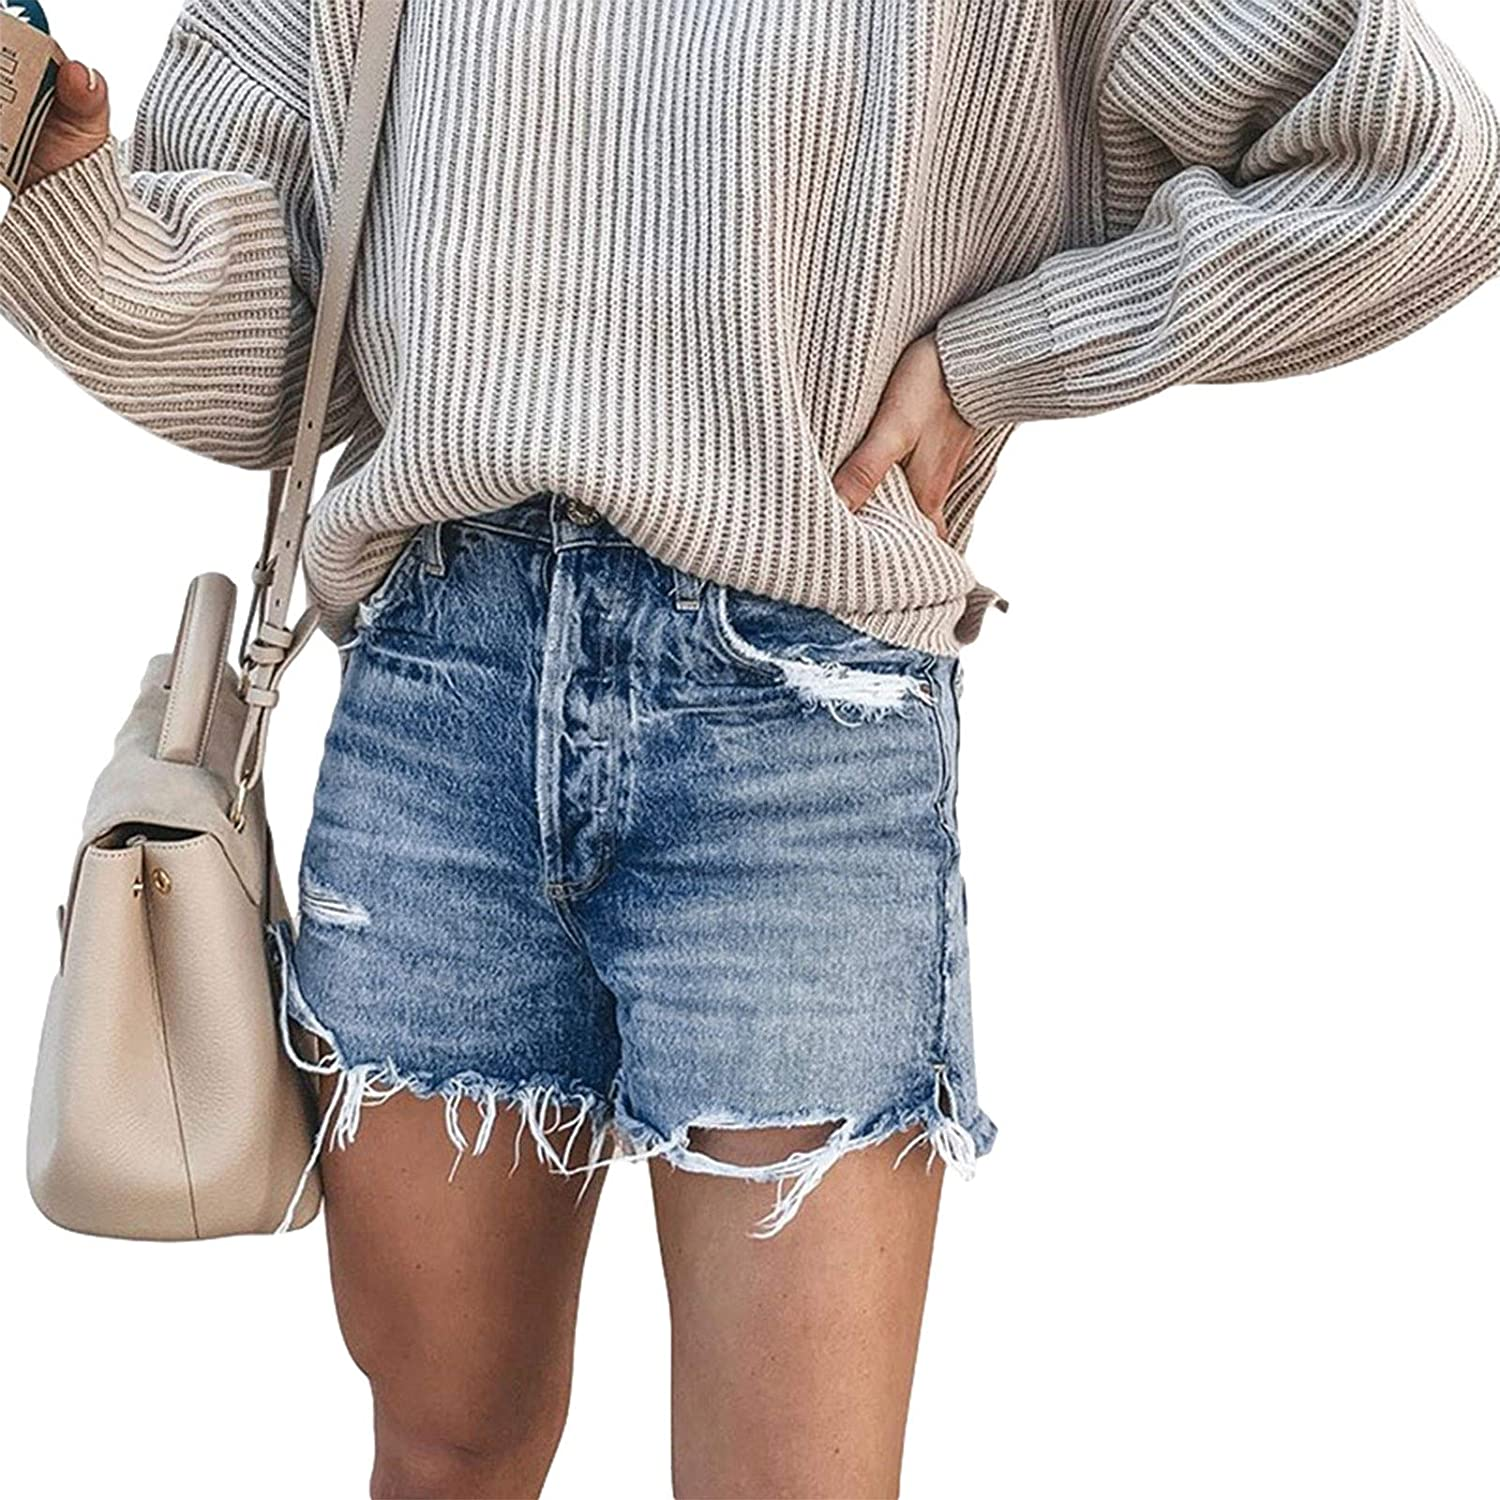 Aiwpstoin Summer Women Fashion Denim Shorts Plus Size Jean Shorts with Pockets Ripped Petite Stretchy Short